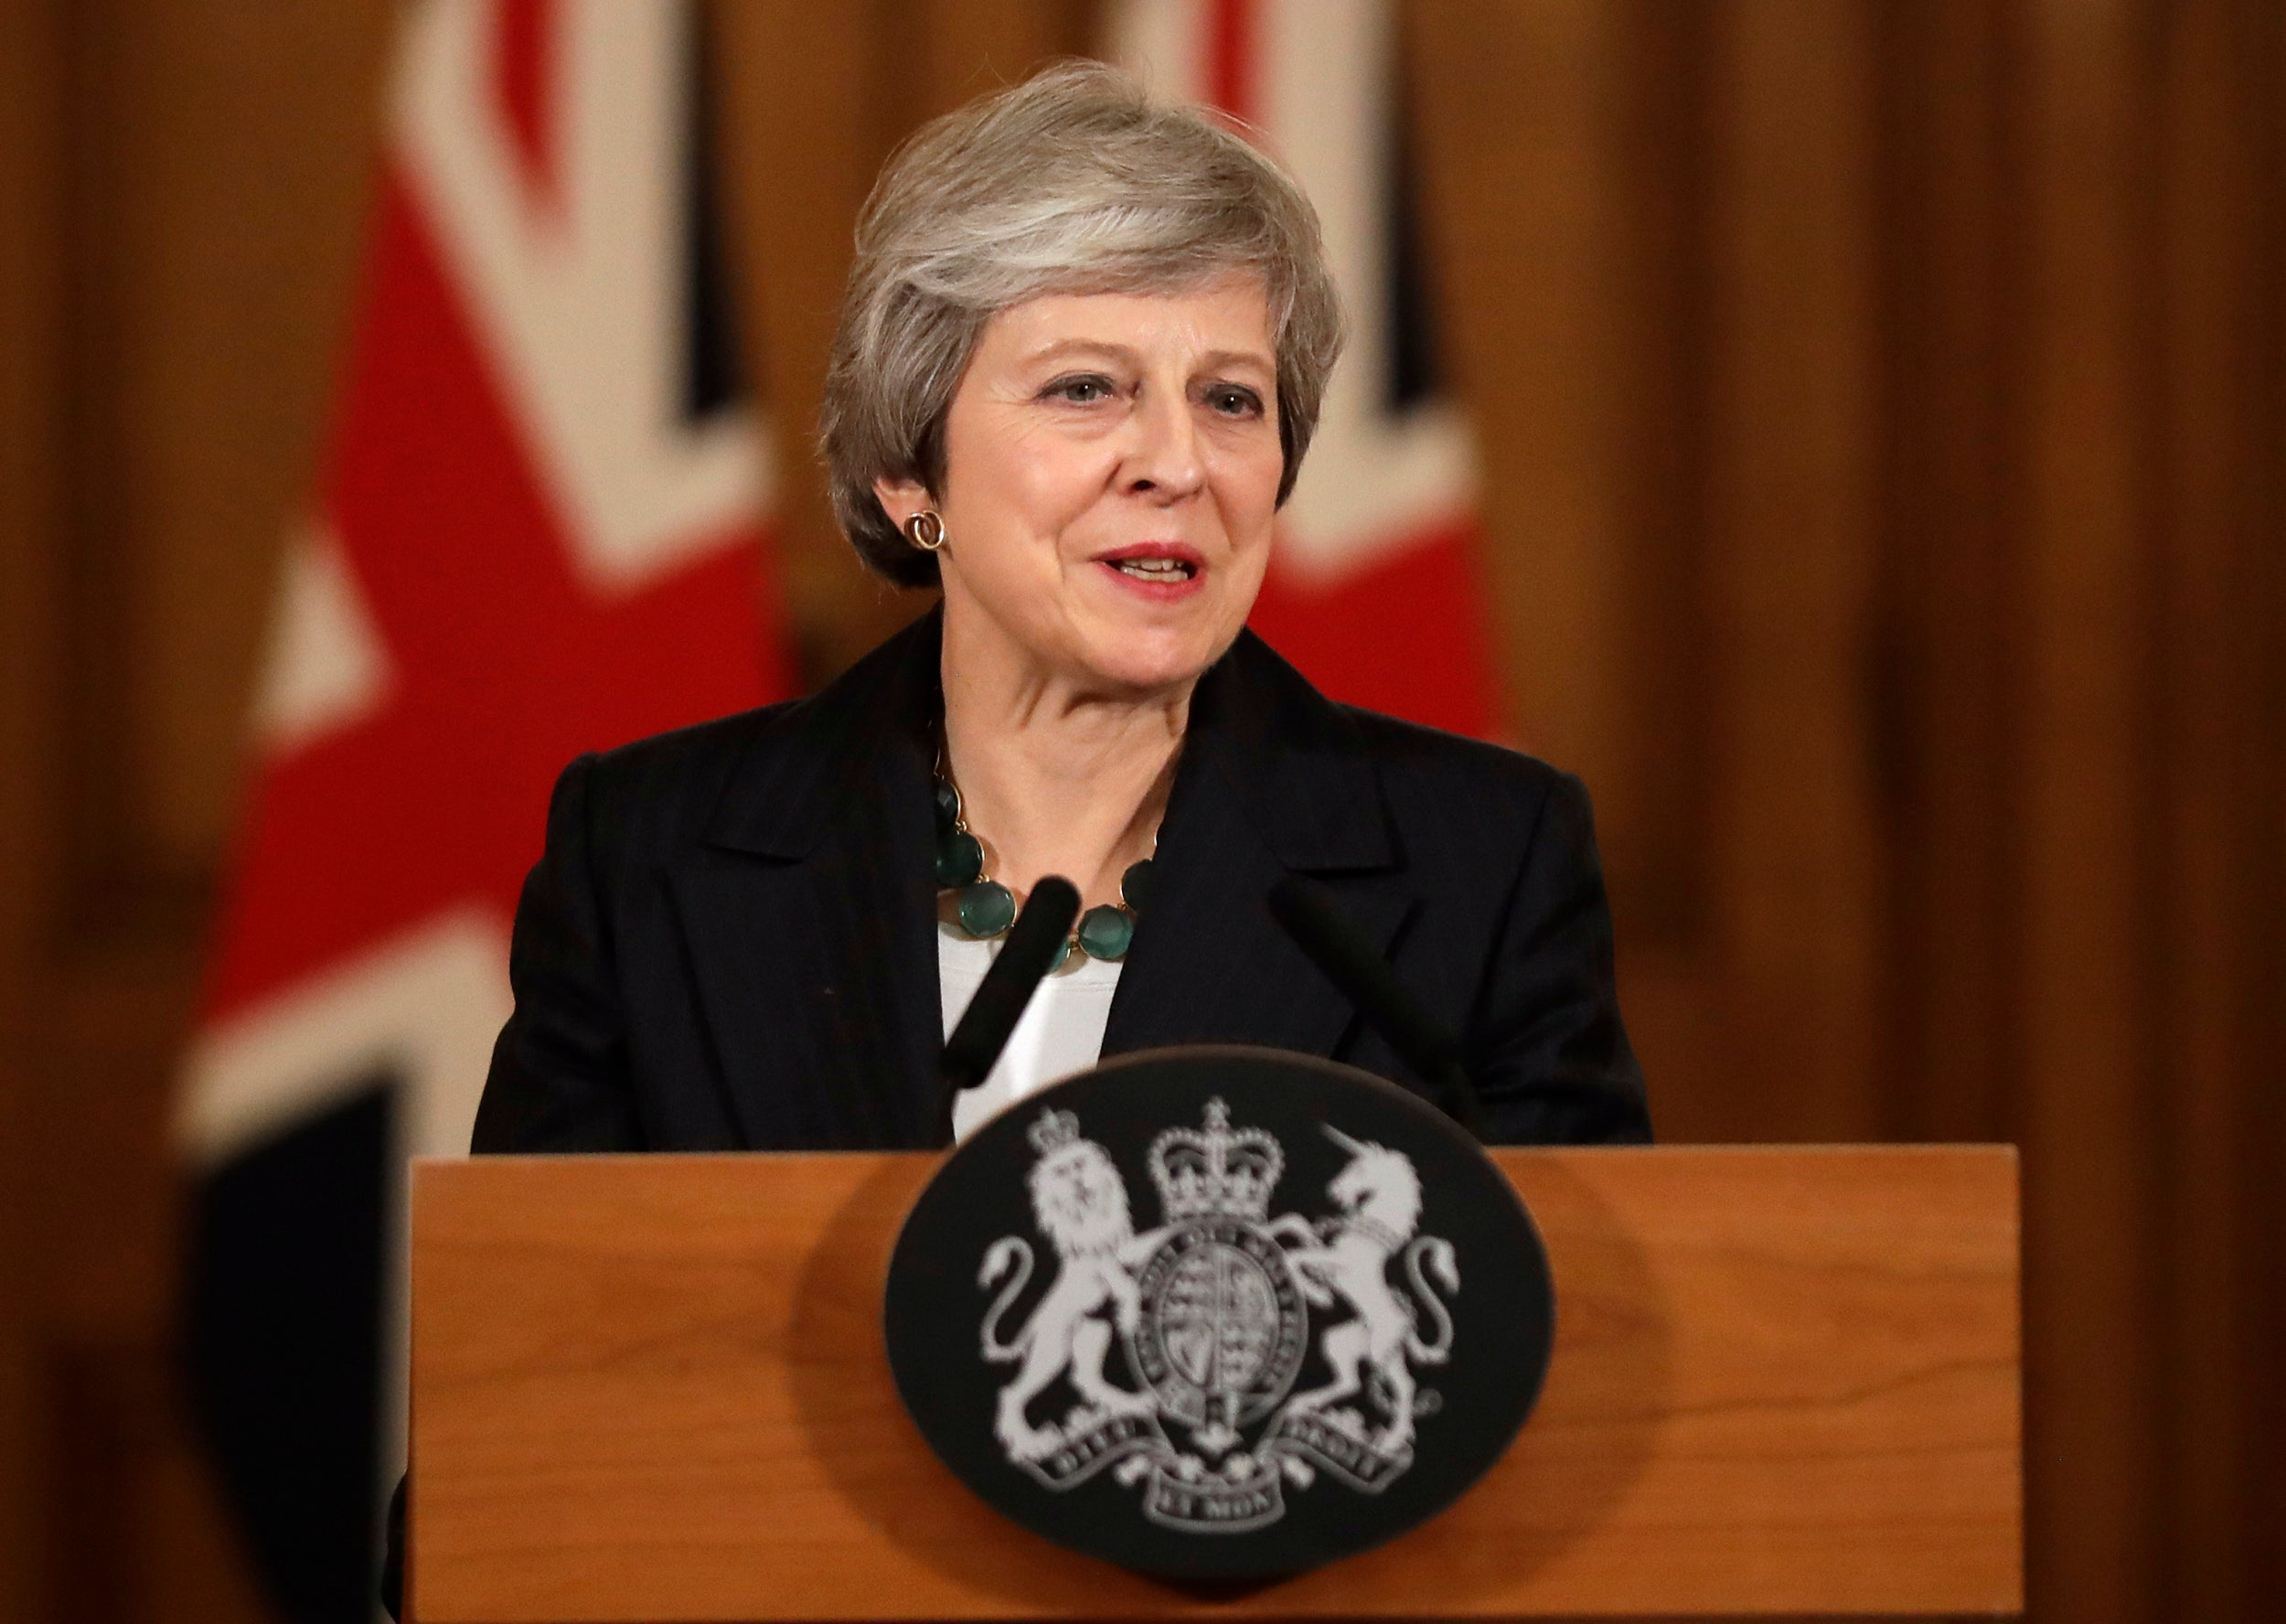 Theresa May is history, but history will be kind to her